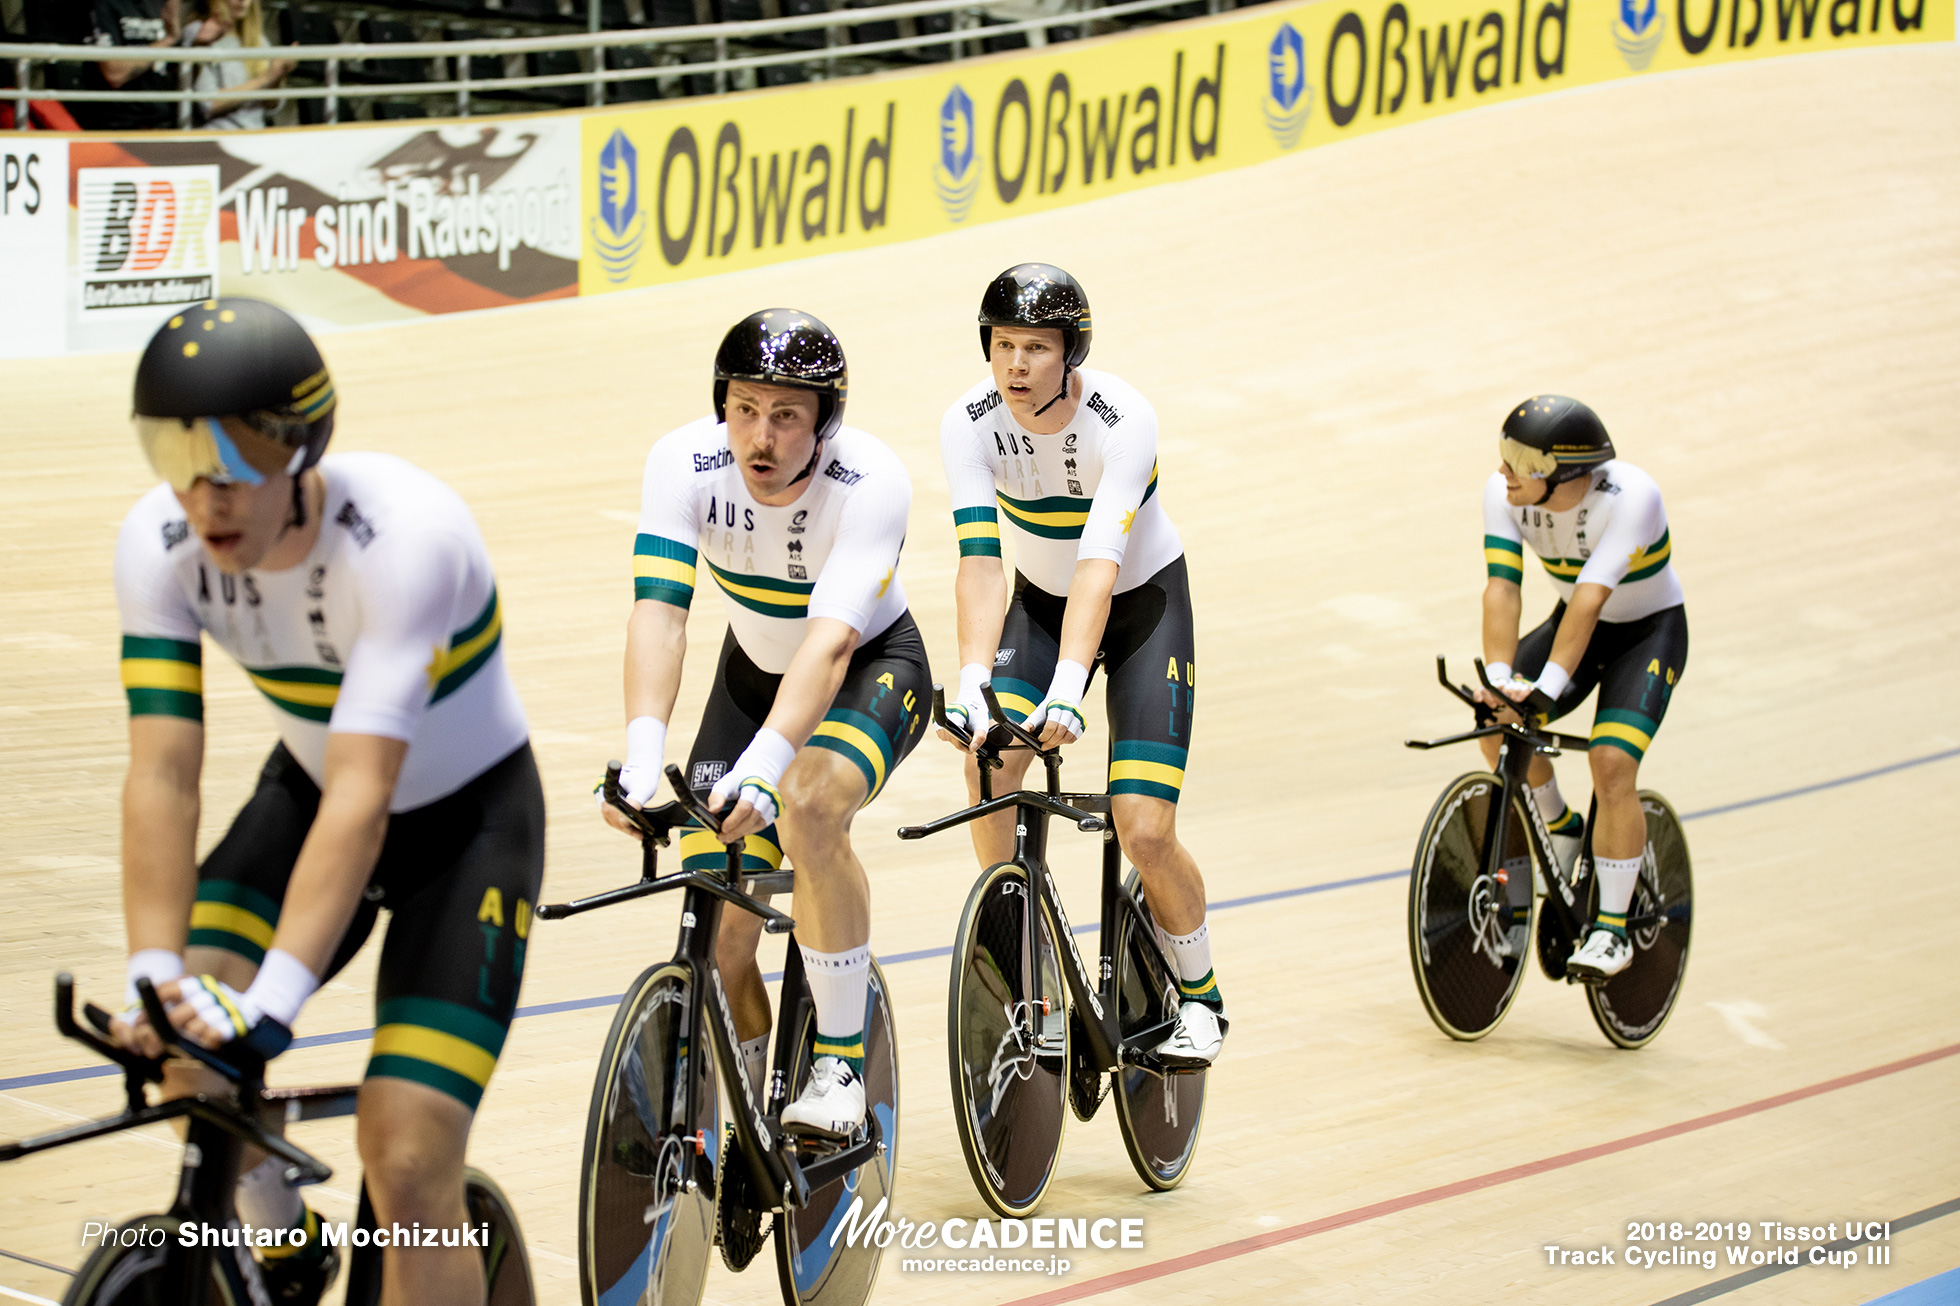 Men's Team Sprint/2018-2019 Track Cycling World Cup III Berlin